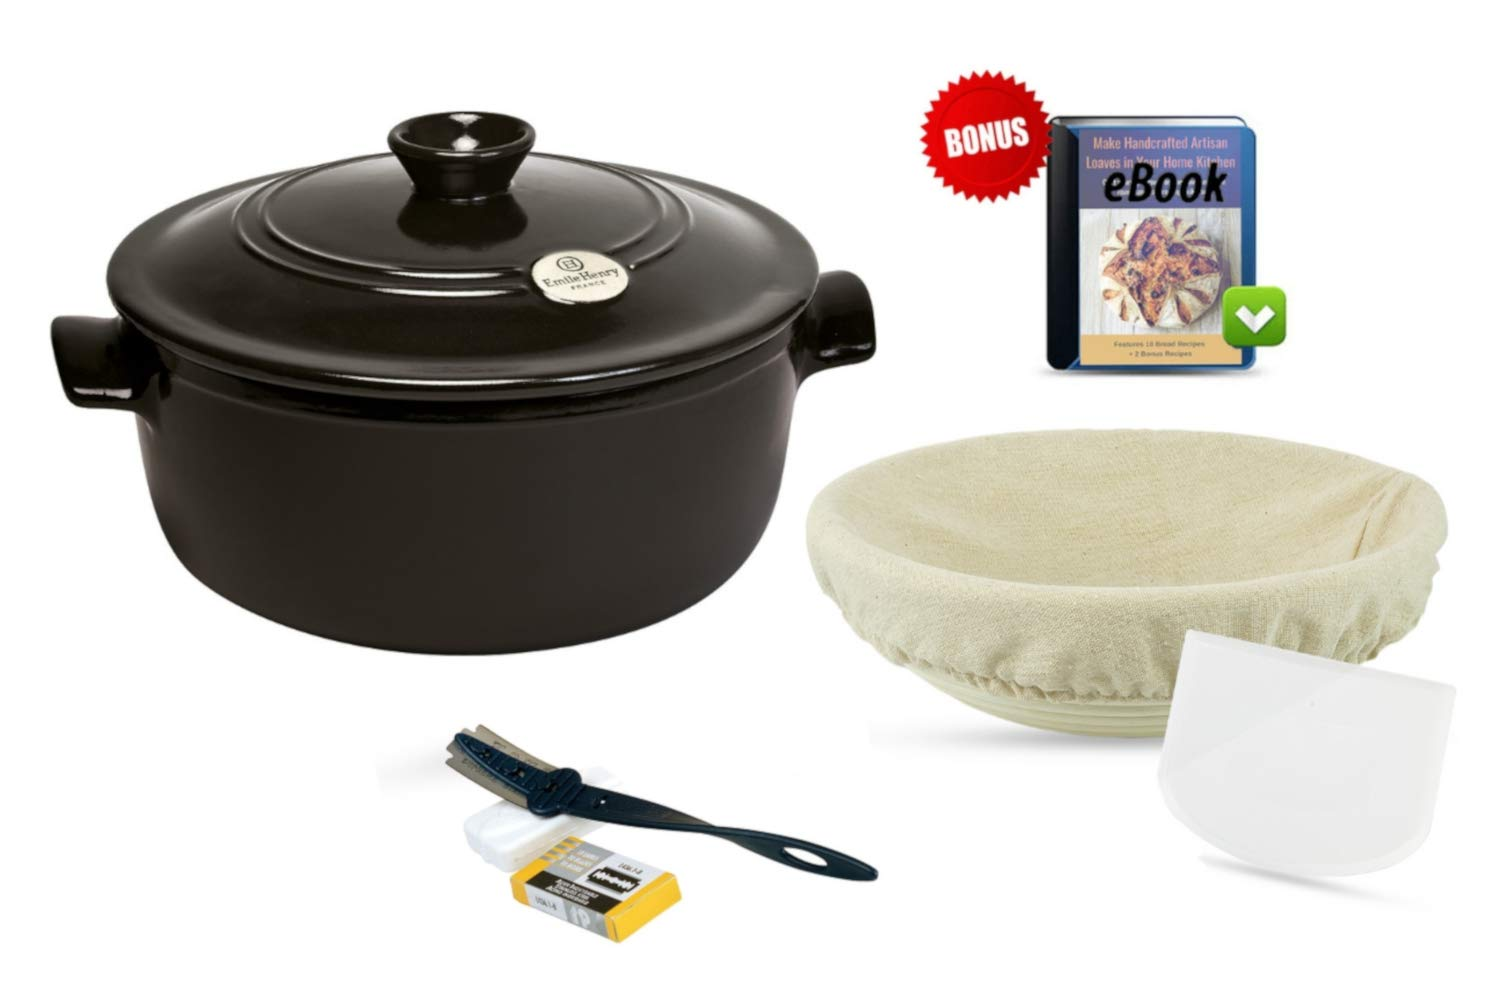 Charcoal Dutch Oven Bread Making Set: Ceramic Round Stewpot Dutch Oven Bread Pot, Charcoal, 9 inch Round Banneton Bread Rising Basket, Cotton Liner, Bread Lame, 10-Pk Dough Blades, Bowl Scraper, eBook